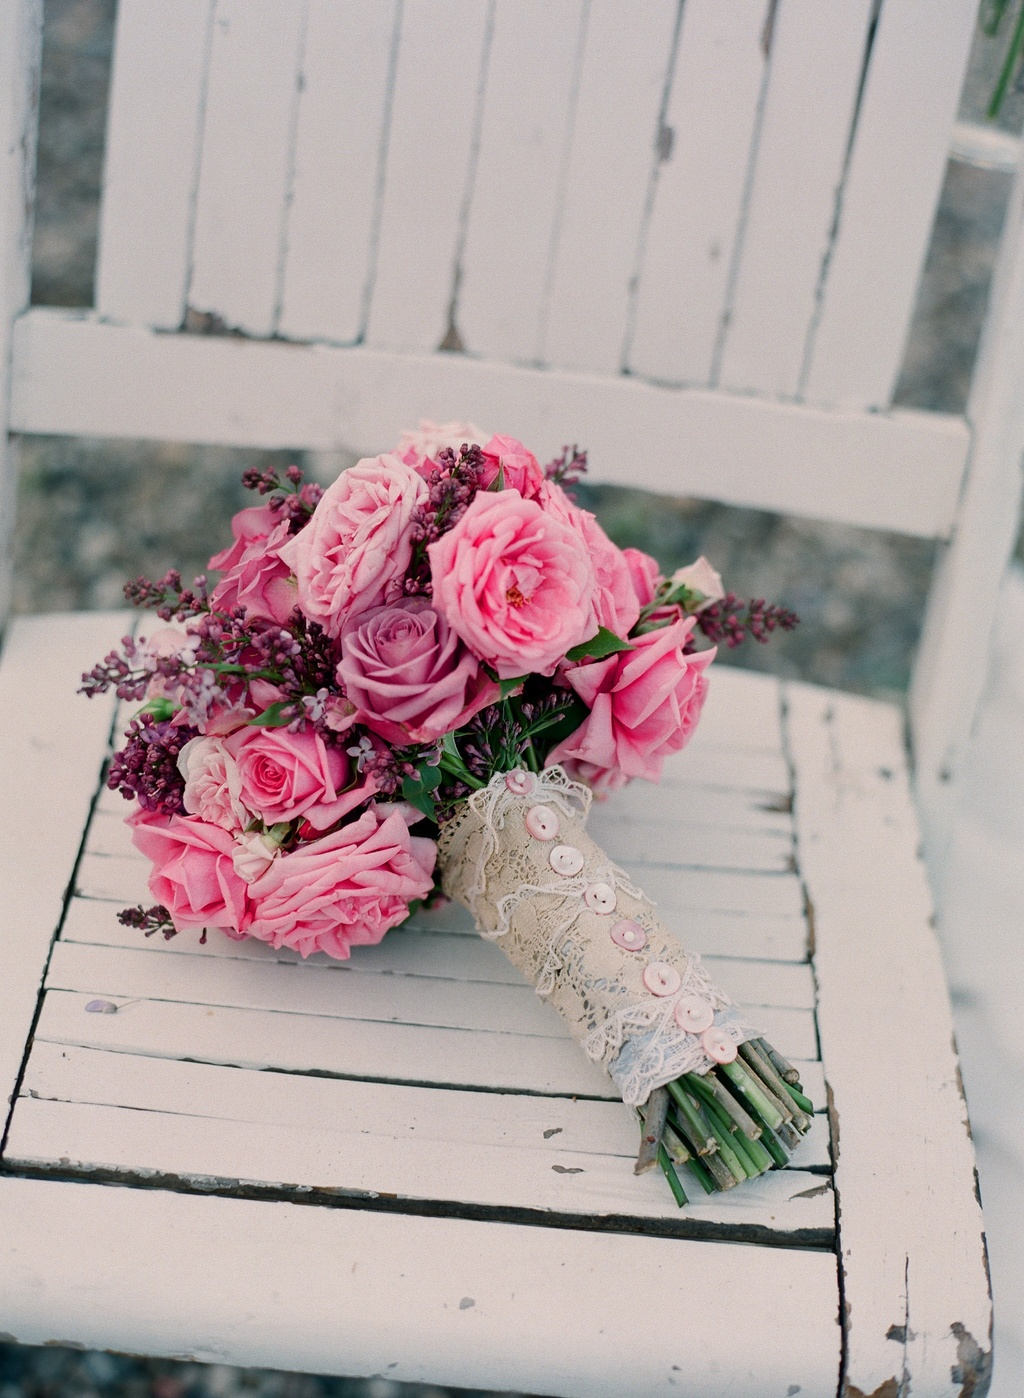 Styled-wedding-beaux-arts-tea-time-monique-lhuillier-santa-barbara-chic-flowers-pink-bouquet-rose-114.original.full